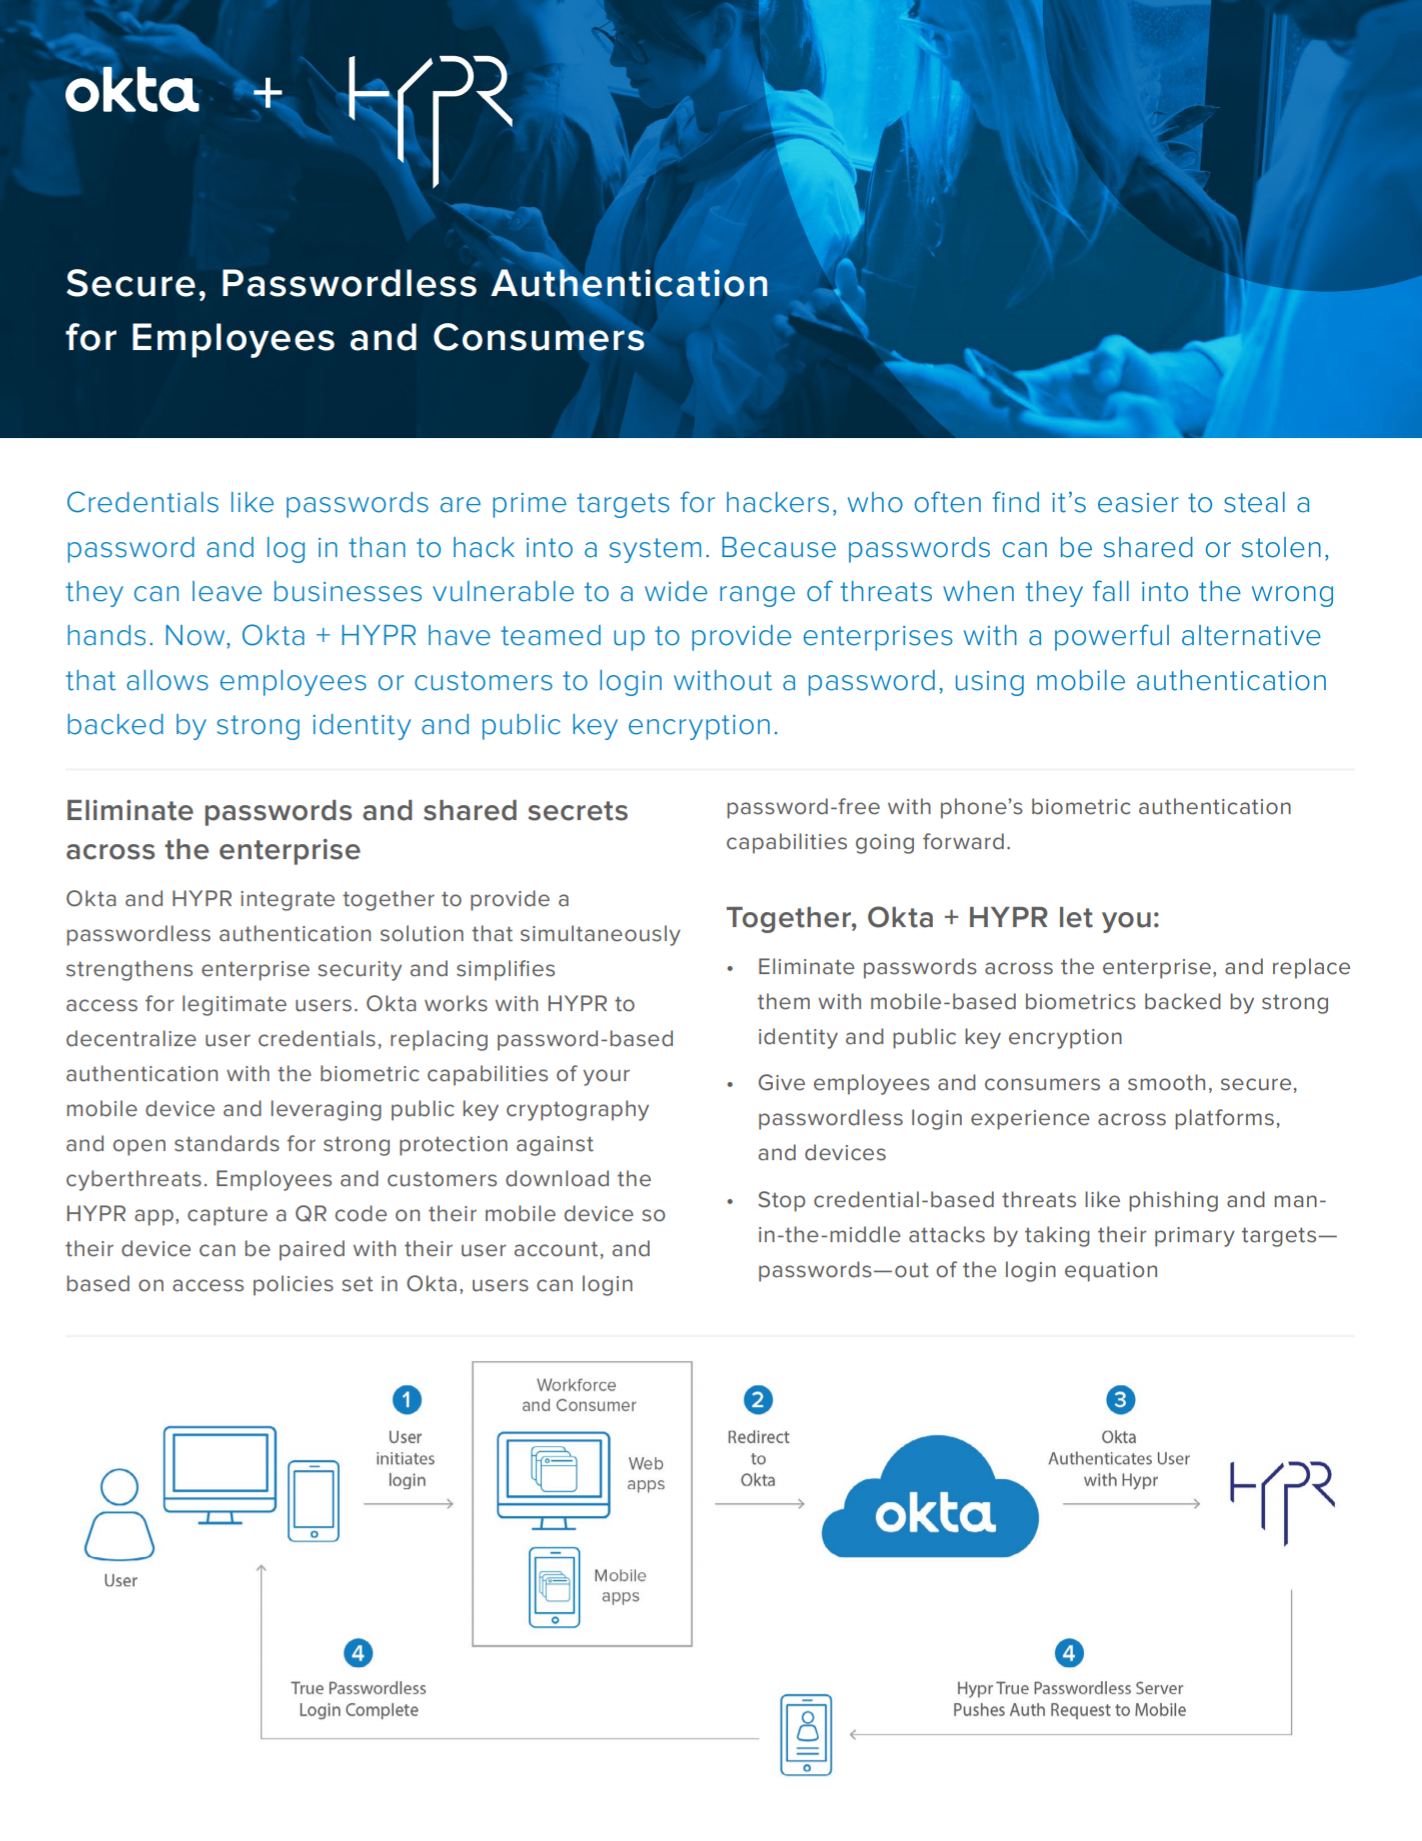 Okta and HYPR provide secure, passwordless authentication for employees and consumers.